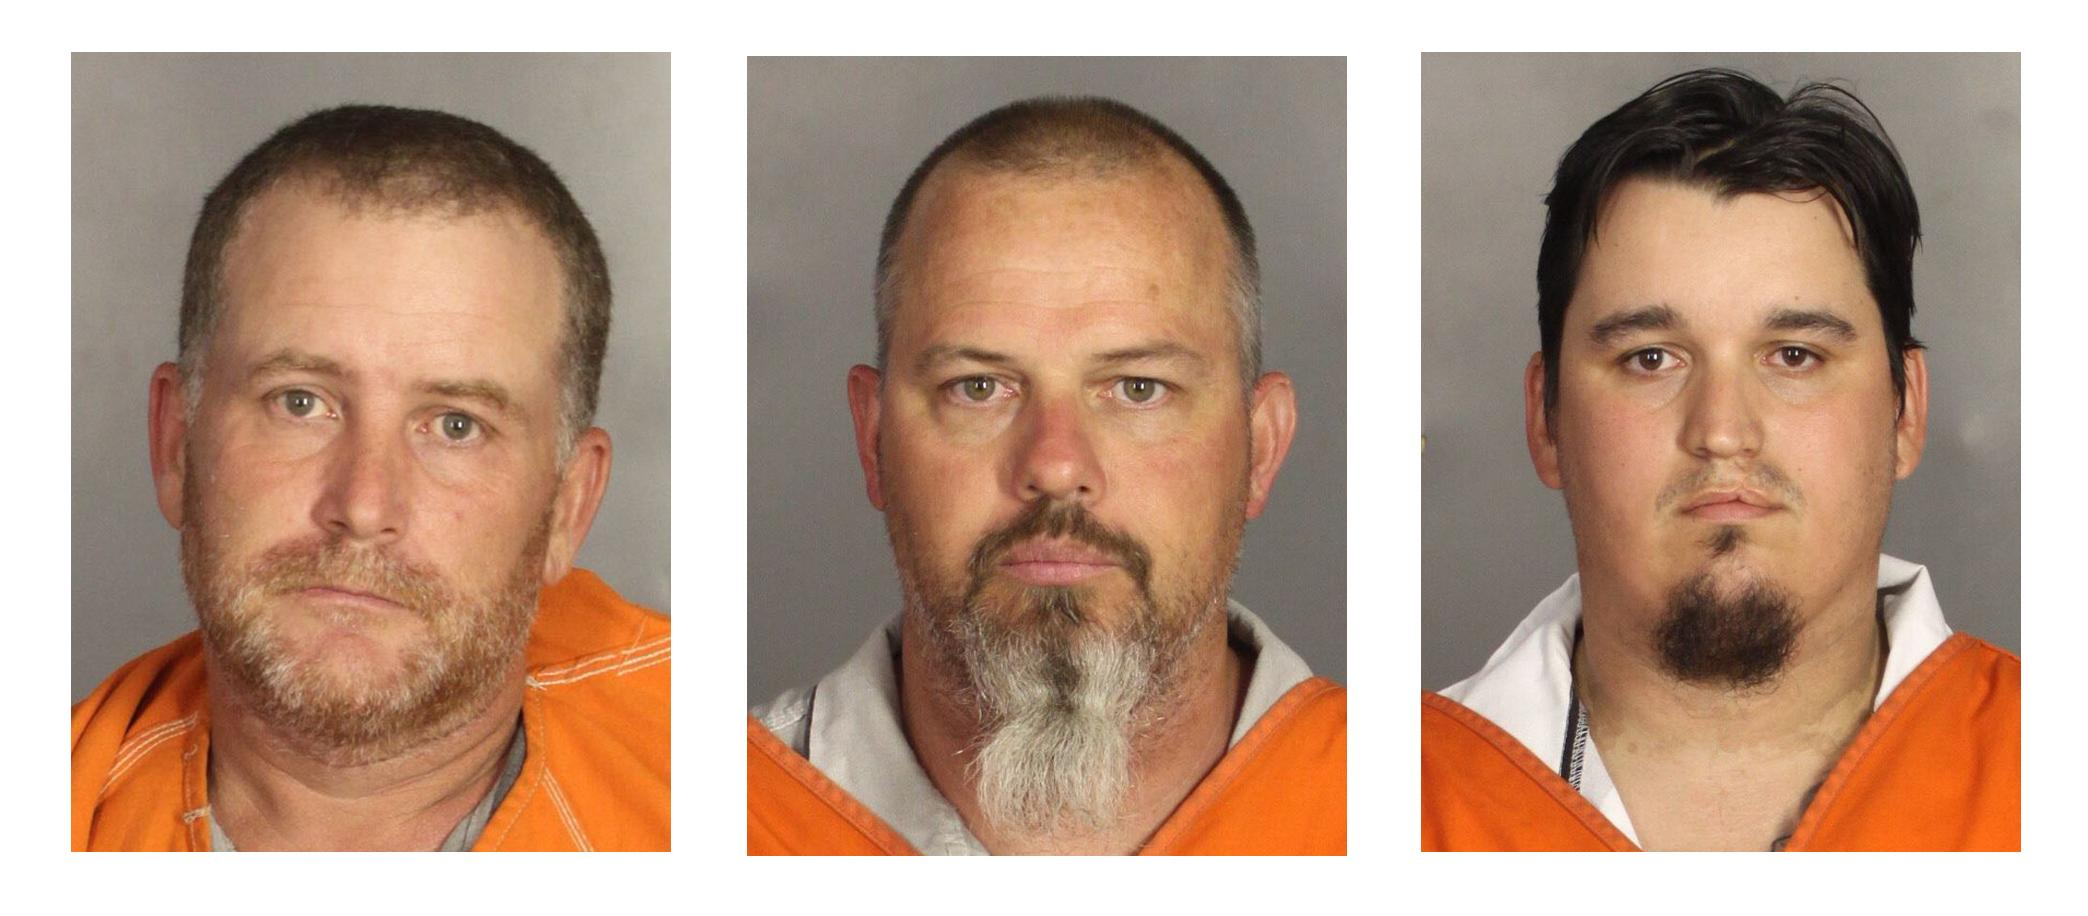 Q&A about arrests in the Texas motorcycle gang shootout